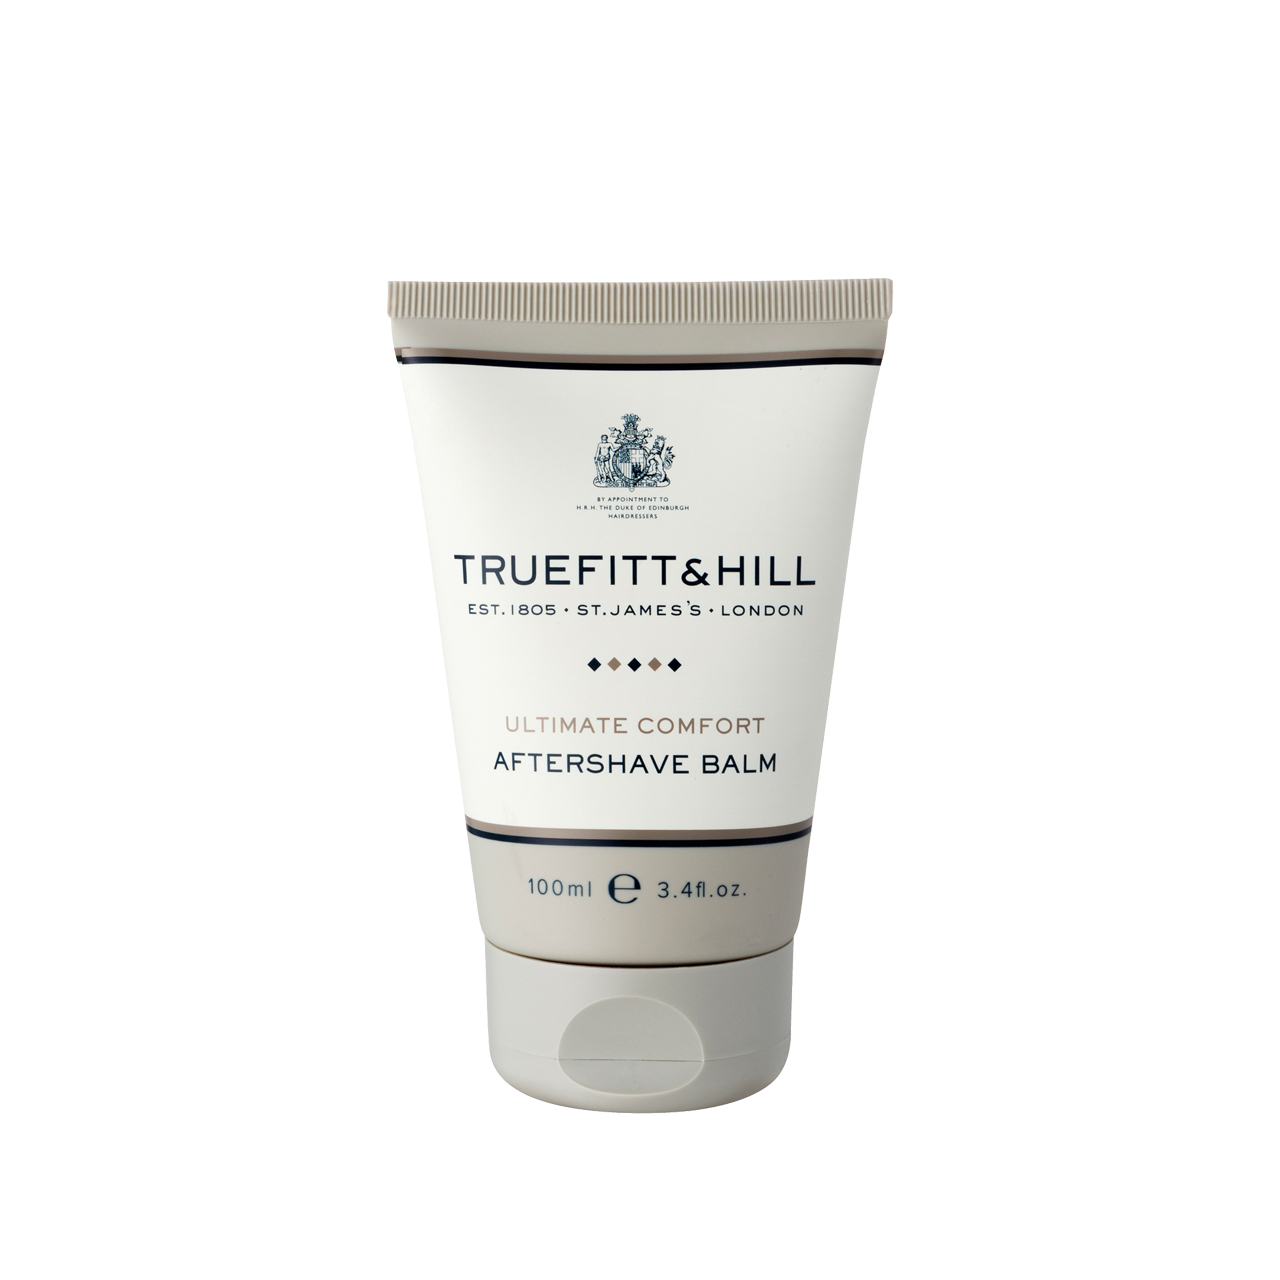 Ultimate Comfort - After Shave Balm